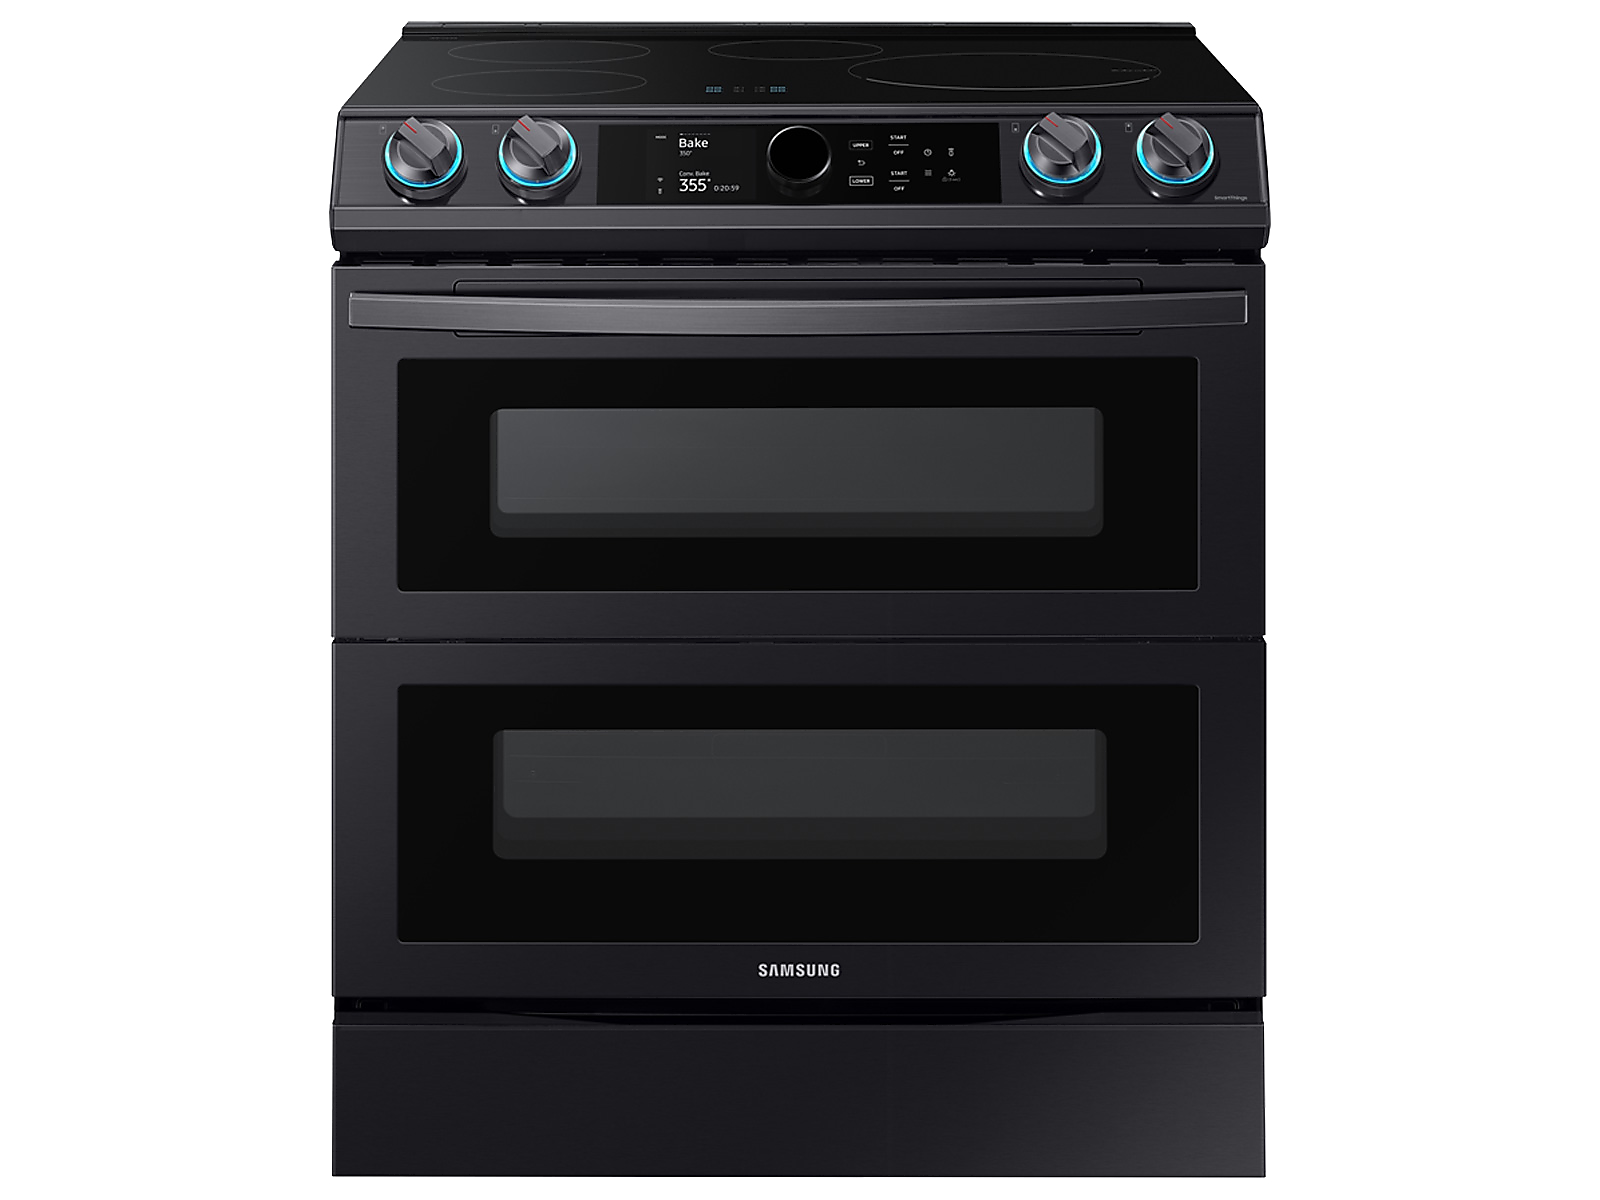 Samsung 6.3 cu. ft. Smart Slide-induction Range with Flex Duo™, Smart Dial & Air Fry in Black Stainless Steel(NE63T8951SG/AA)